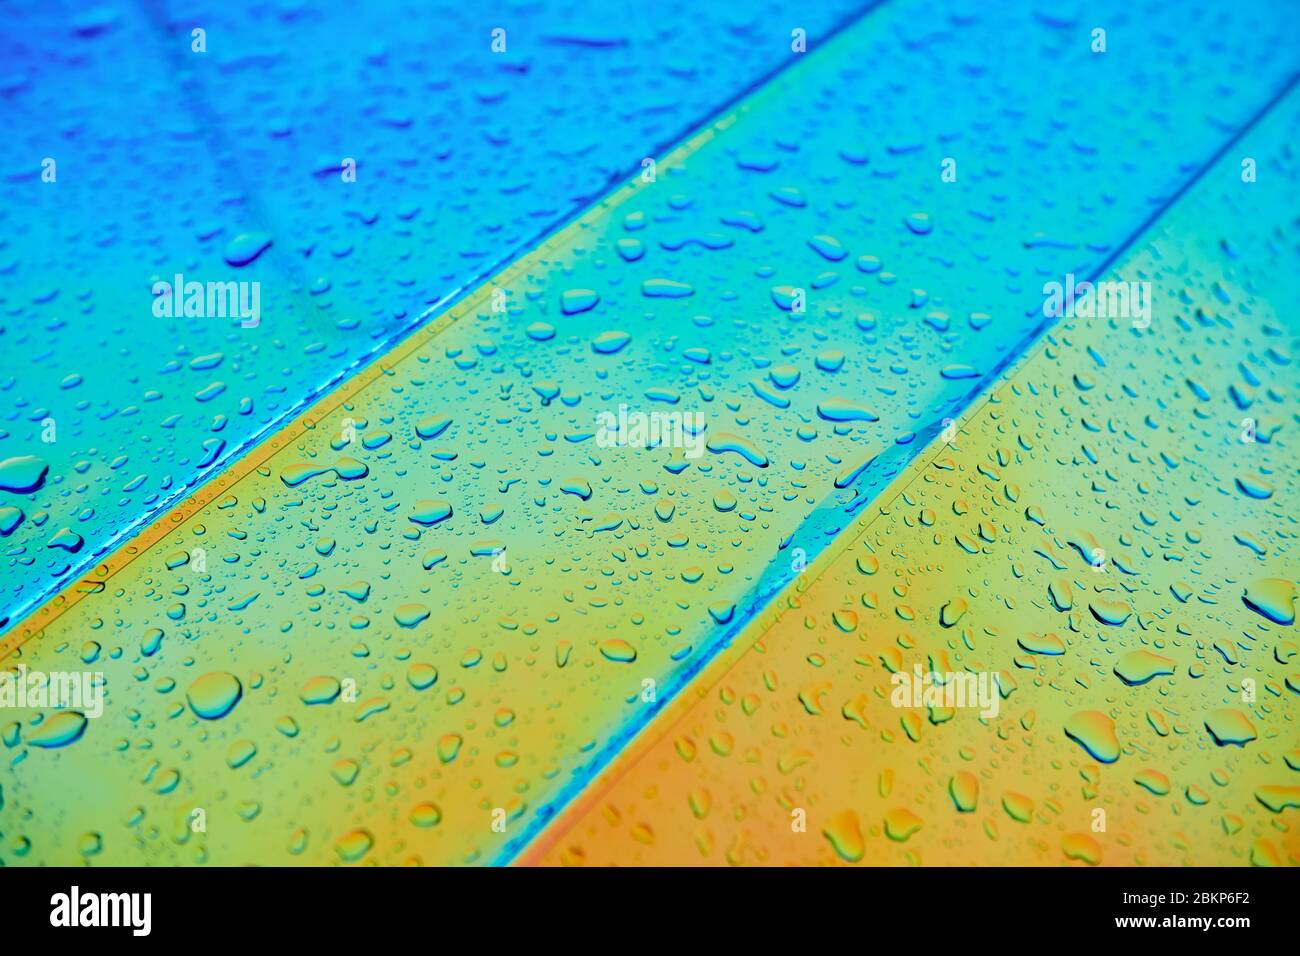 Chameleon Holographic Surface With Water Drops After The Rain Car Wrapping Background Rainbow Colour Paint Stock Photo Alamy